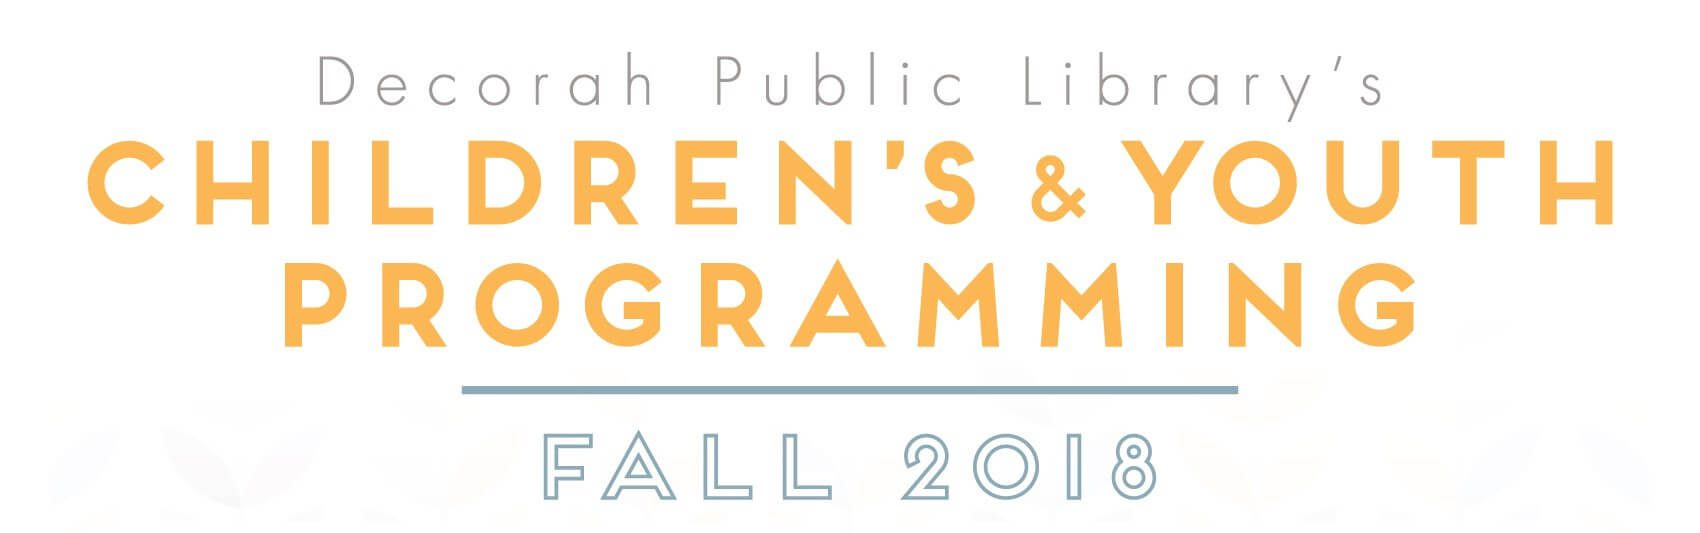 Fall Children's and Youth Programming 2018